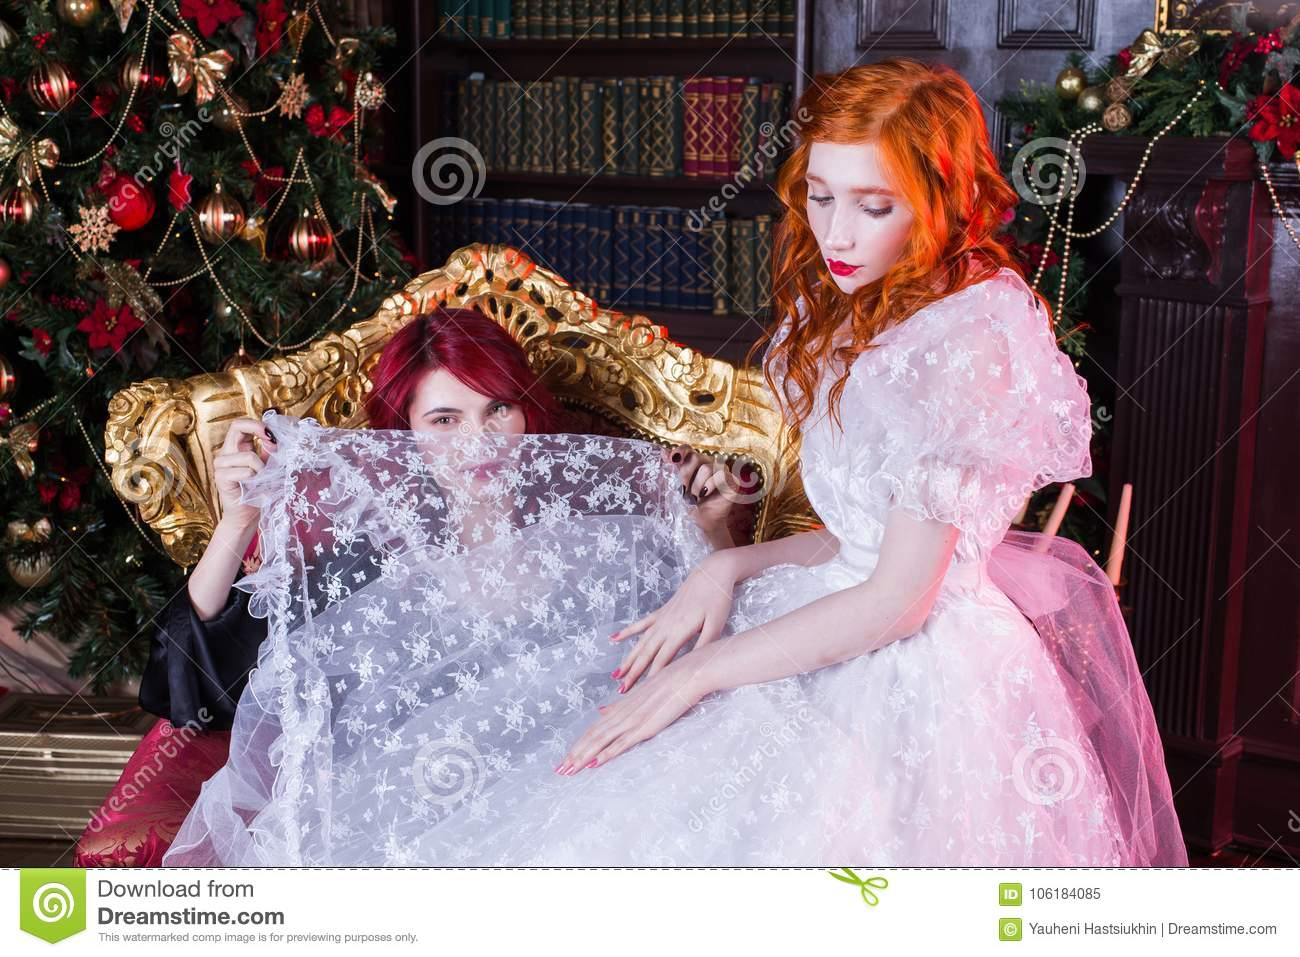 Two Beautiful Girls With Red Hair In A Beautiful White Wedding